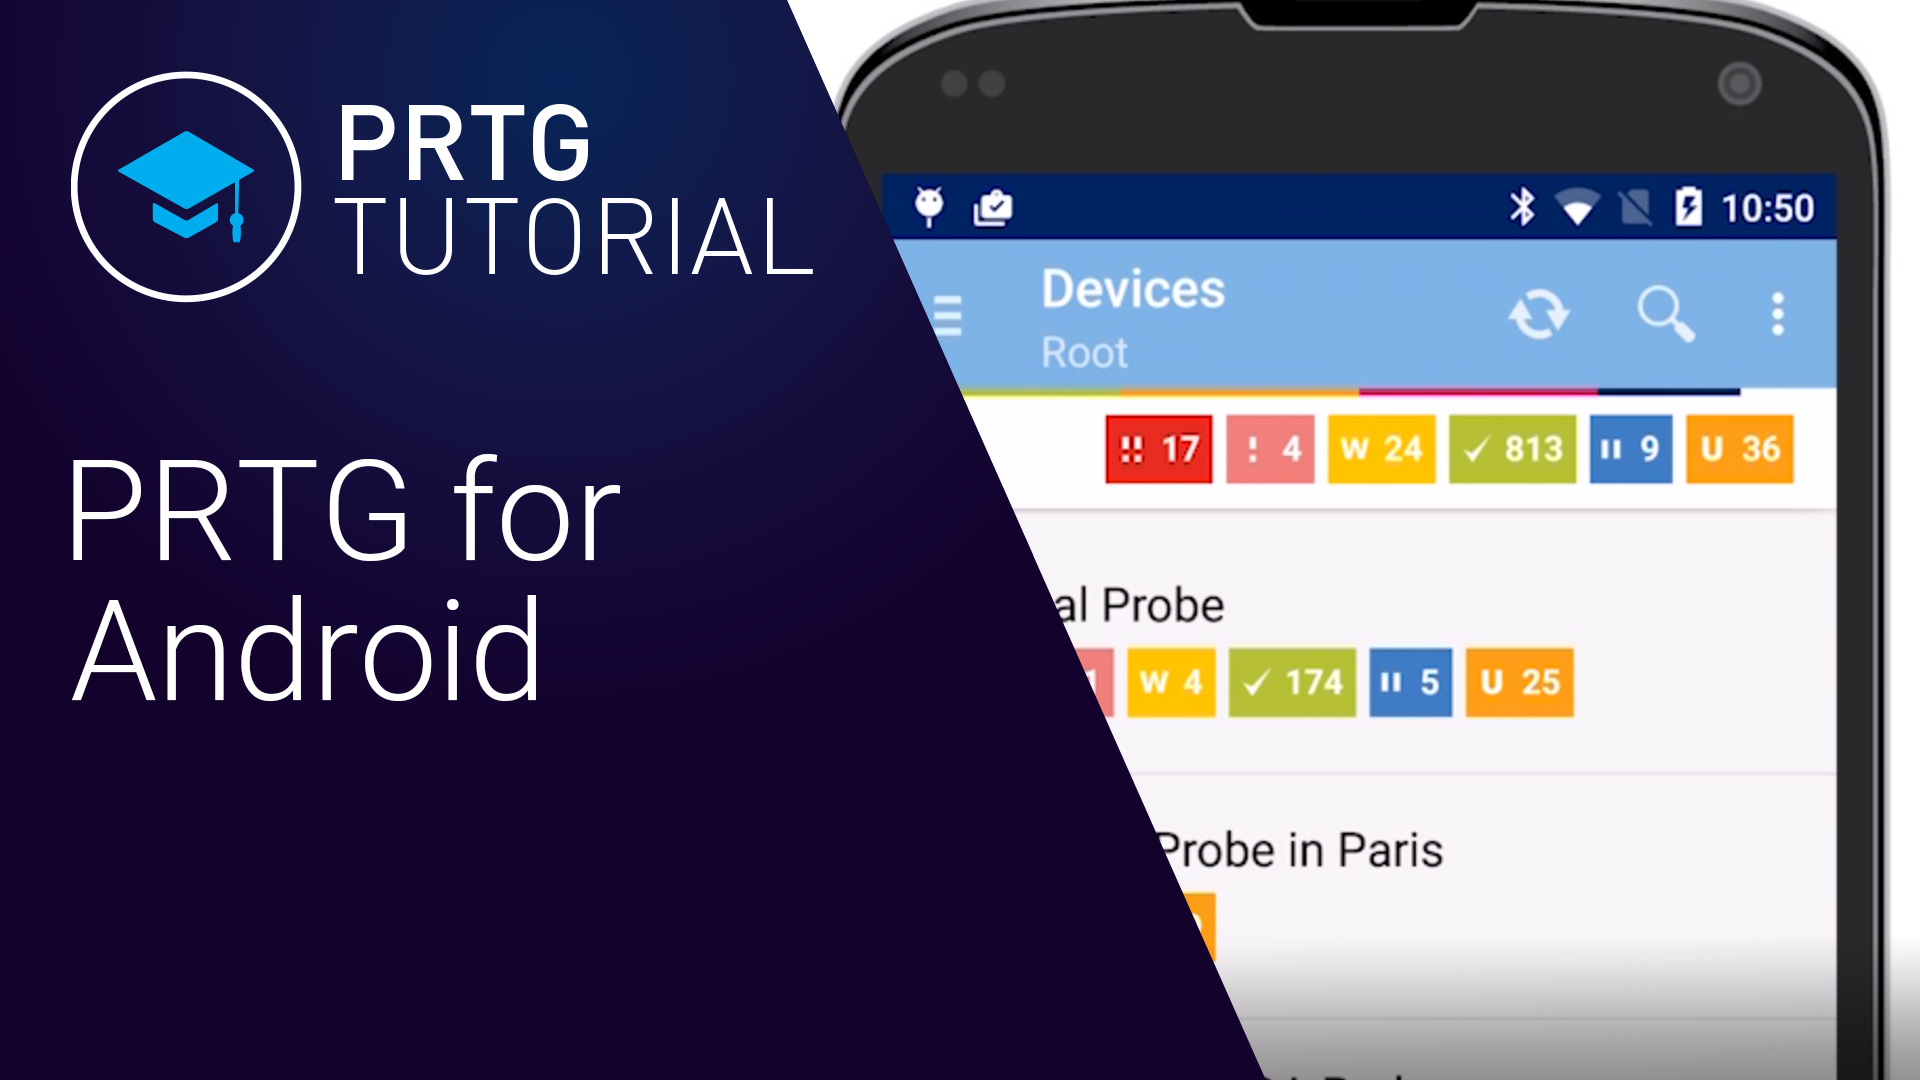 PRTG POUR ANDROID - TUTORIEL (Videos)